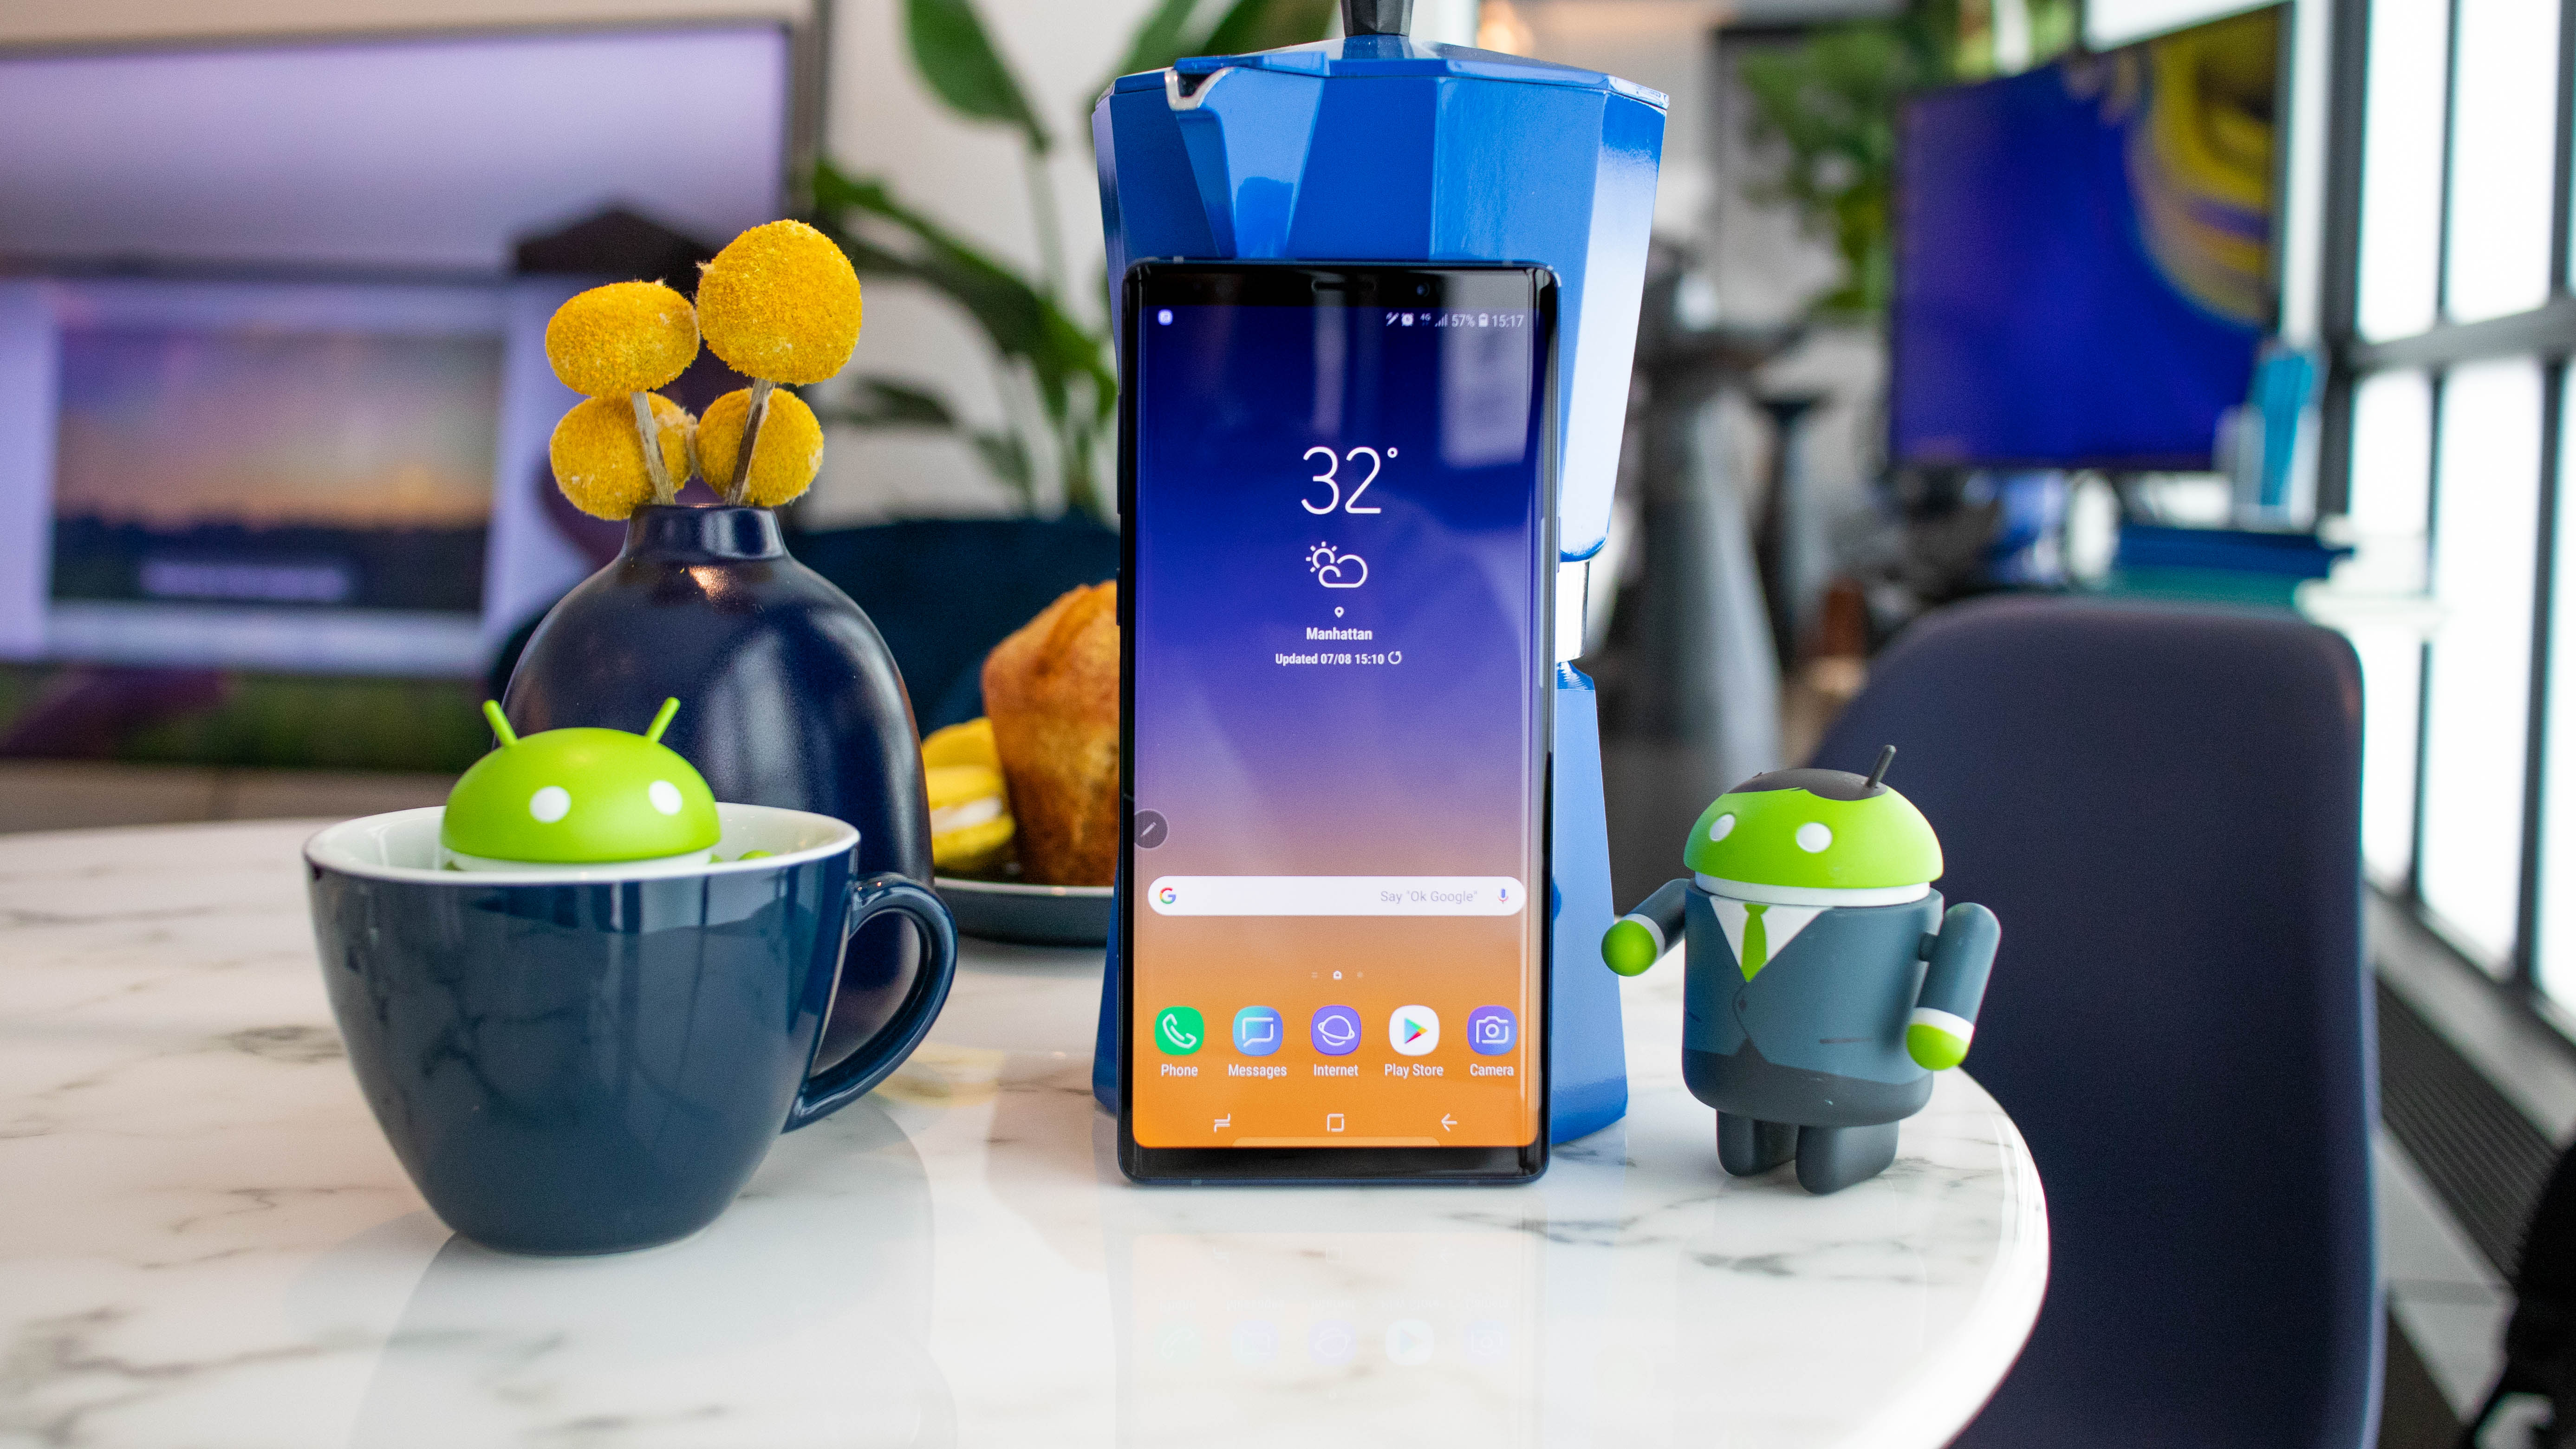 Go Business Mobile Plan $65 Best Samsung Galaxy Note 9 Deals In The Us Unlocked Verizon